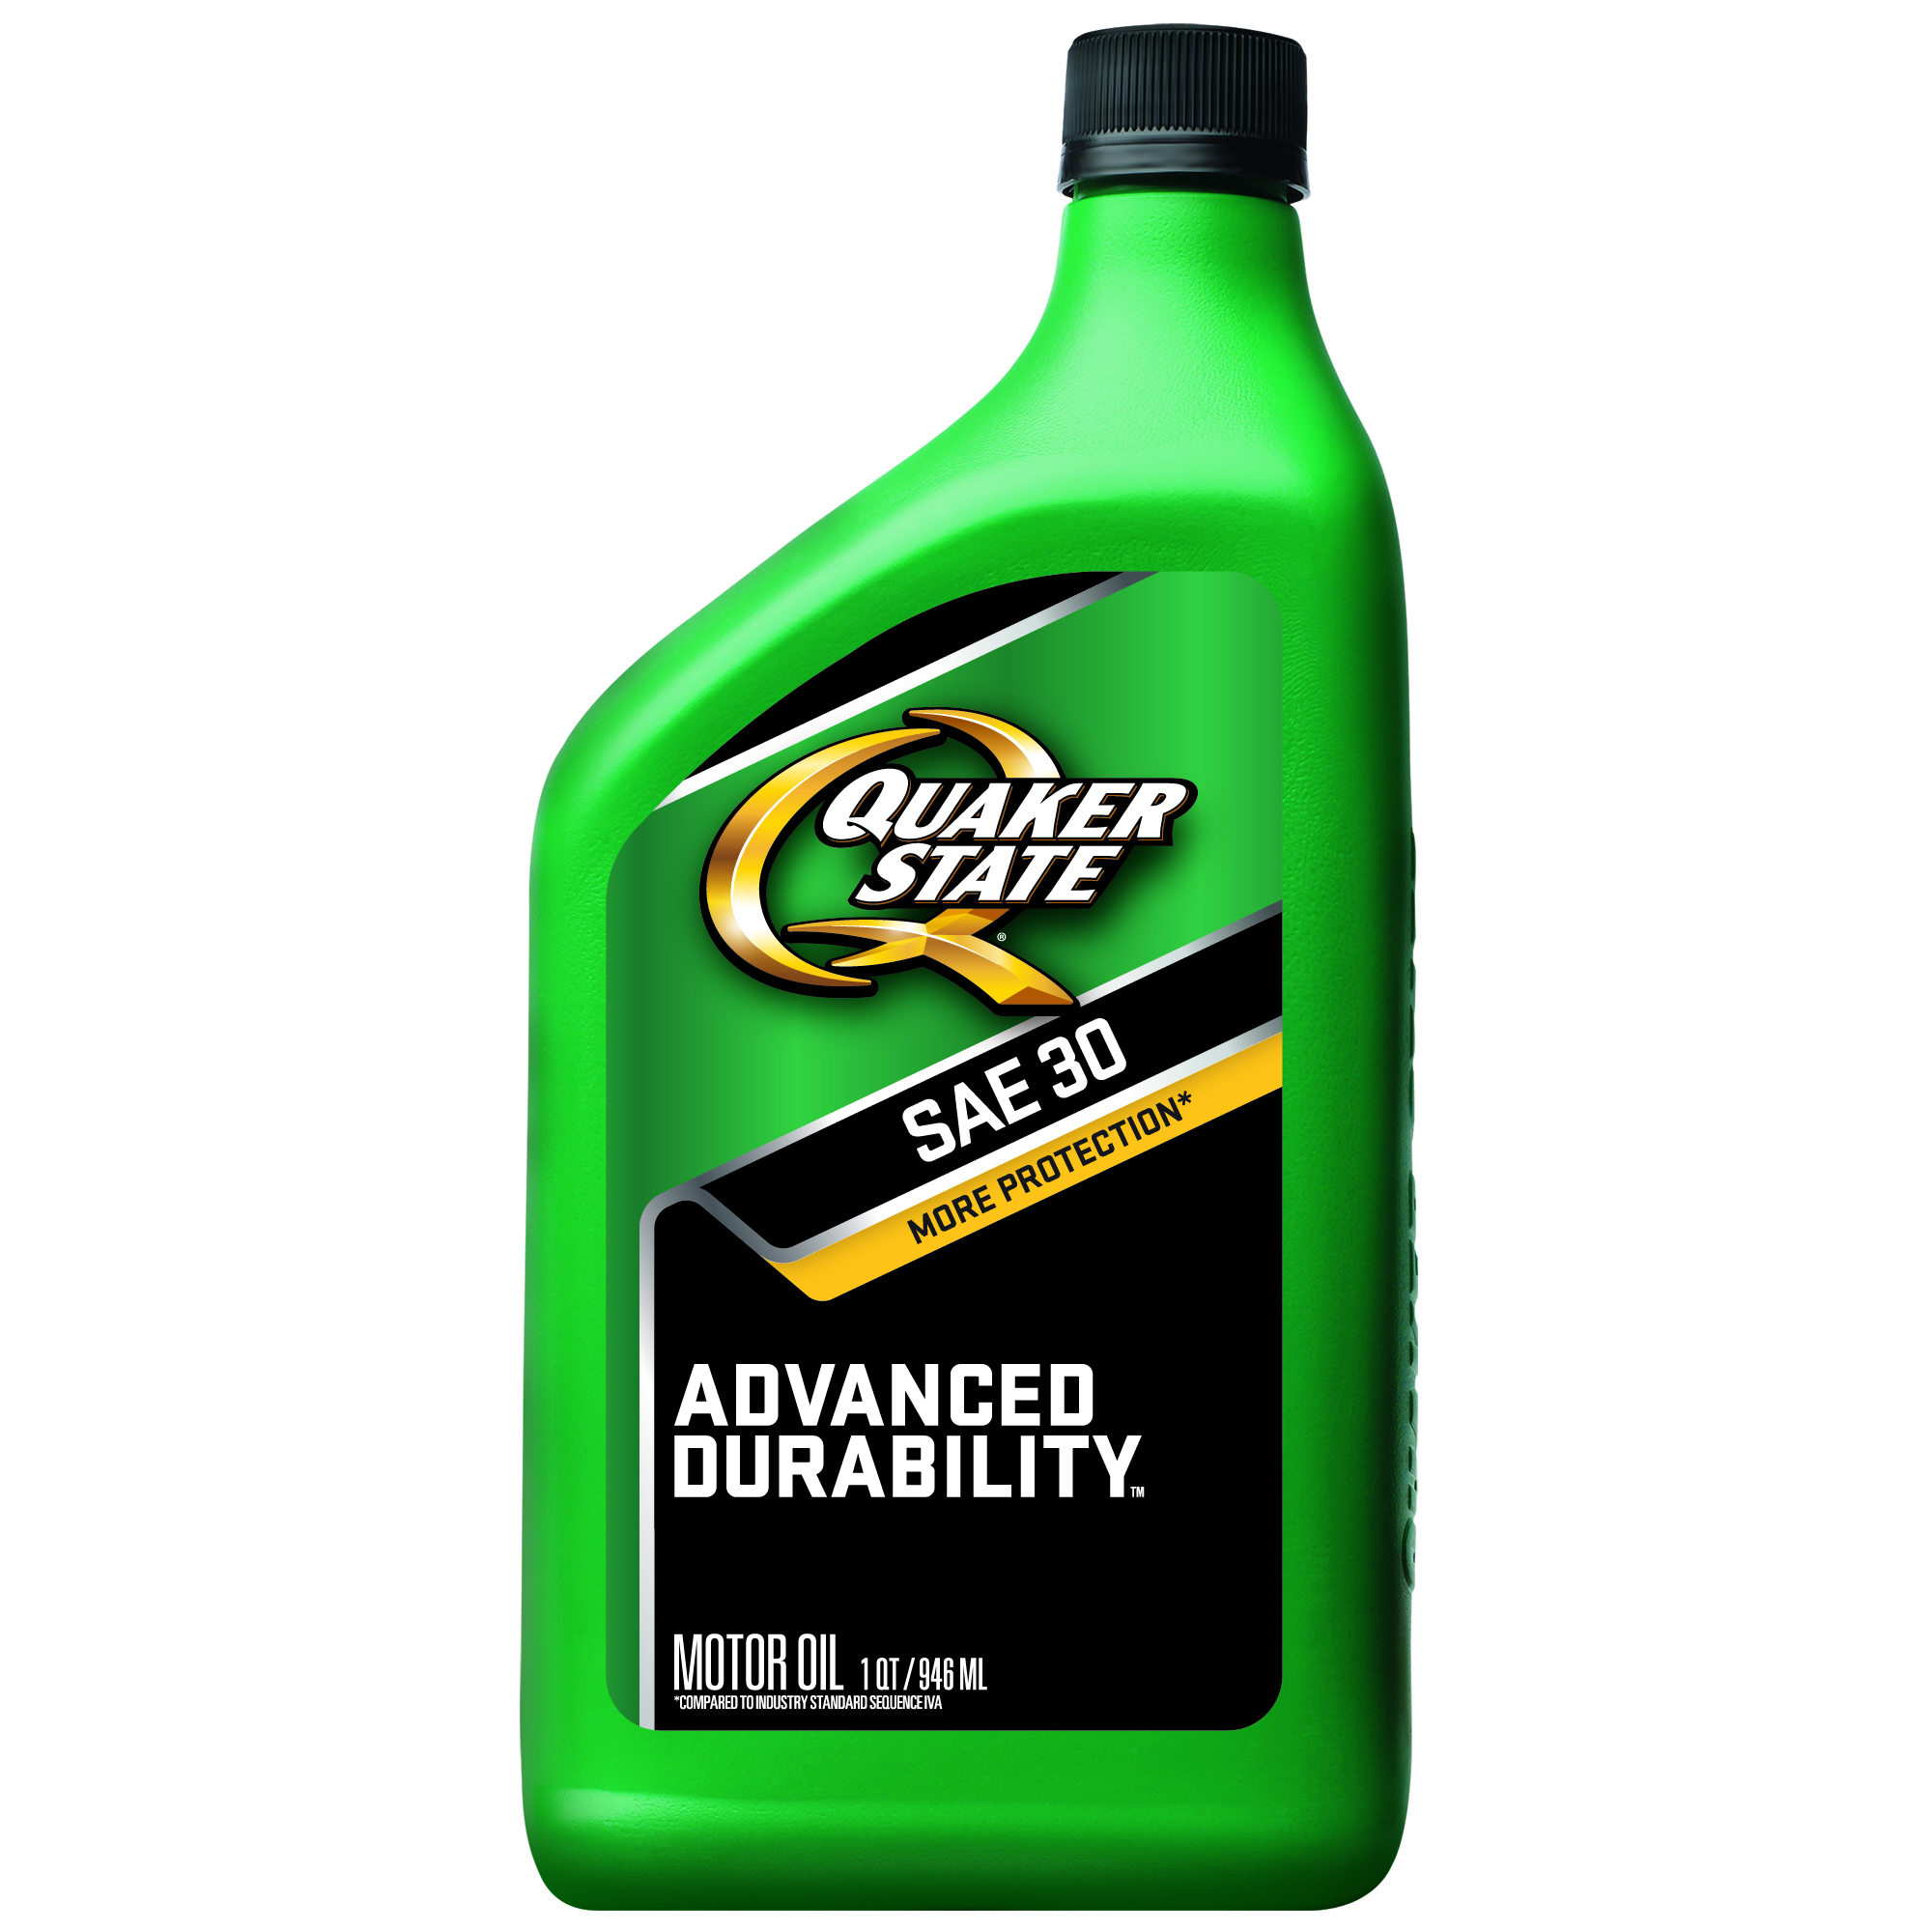 (2 Pack) Quaker State Conventional Advanced Durability SAE 30 Motor Oil 1qt